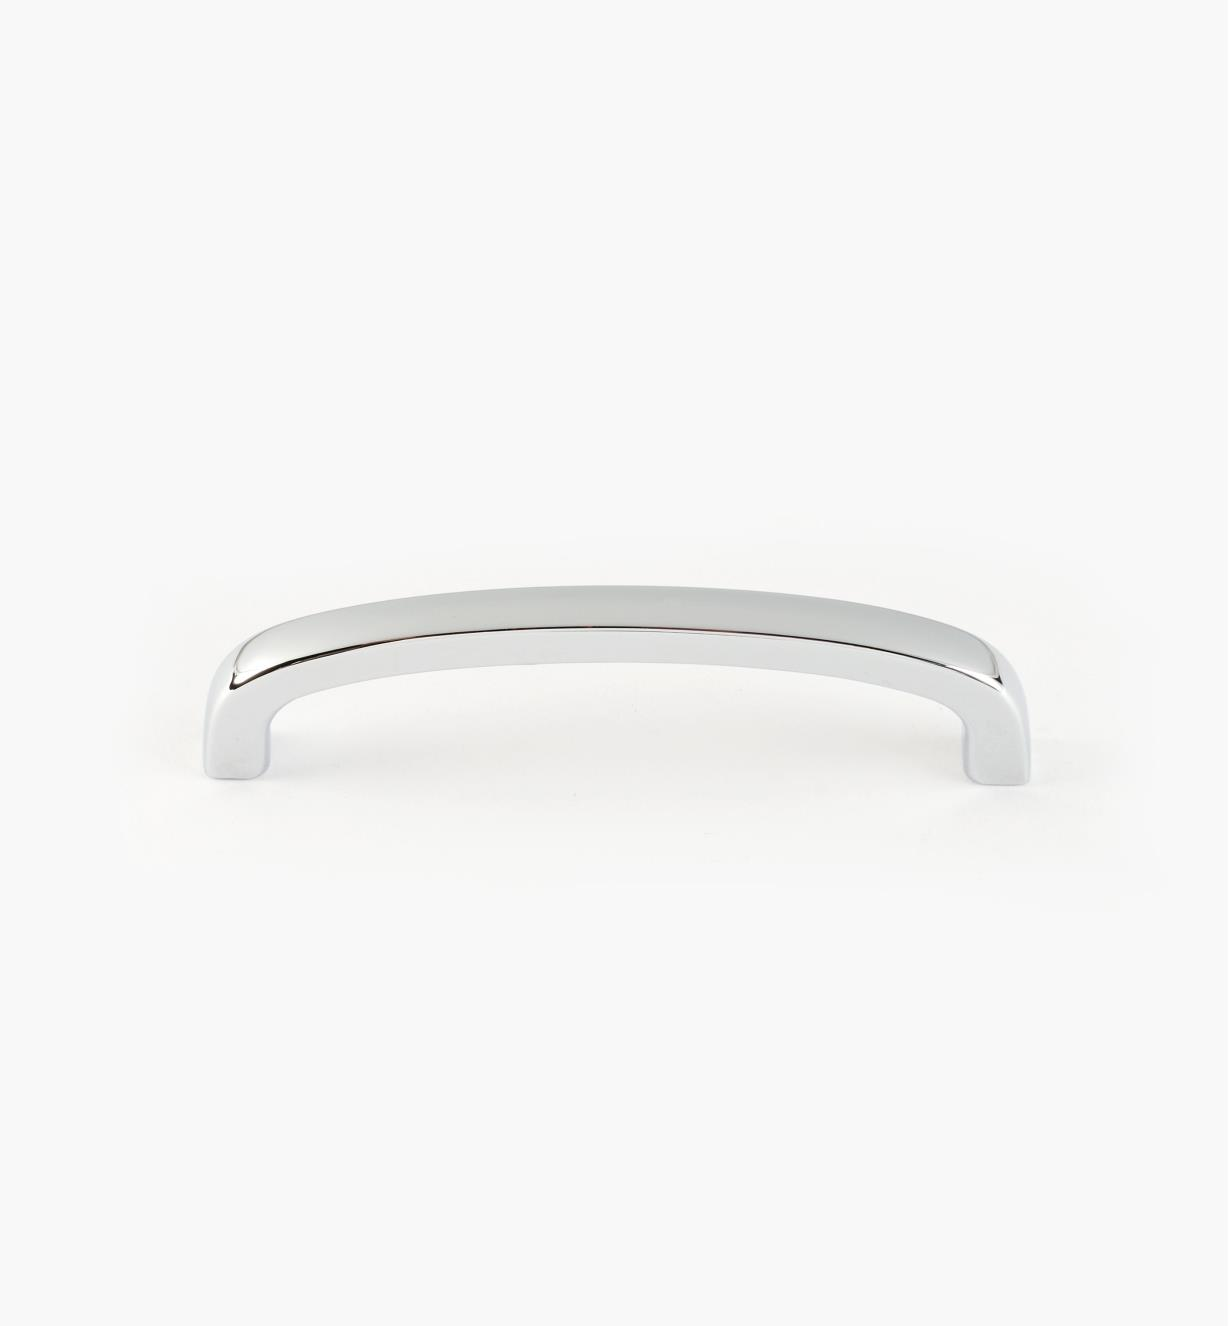 01W8601 - 96mm Chrome Plate Pull